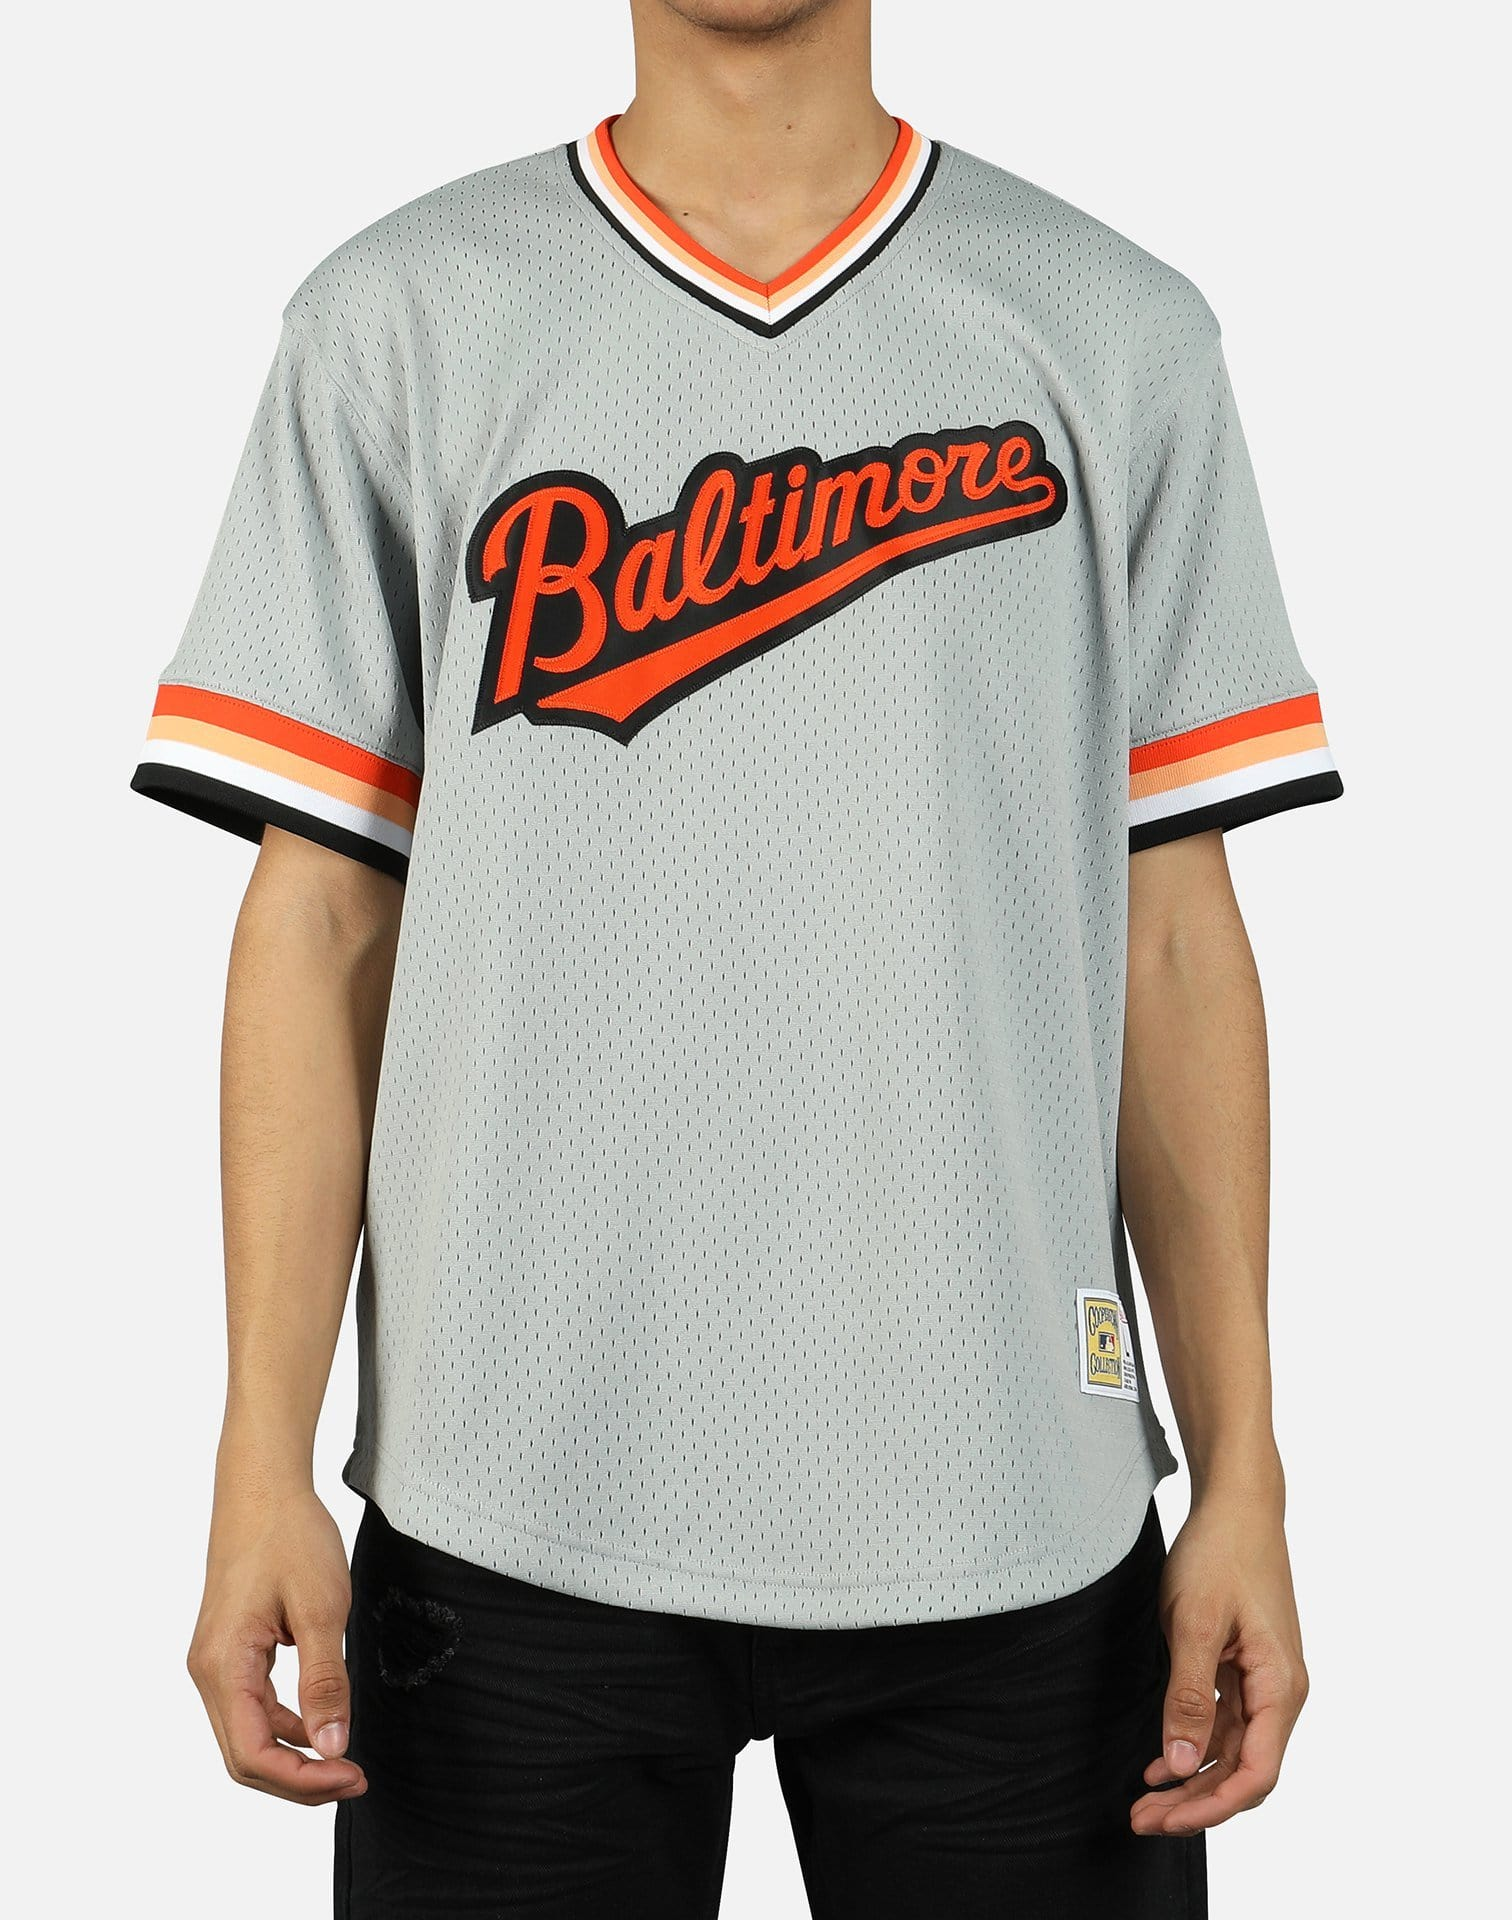 Mitchell & Ness Men's MLB Baltimore Orioles Mesh V-Neck Jersey